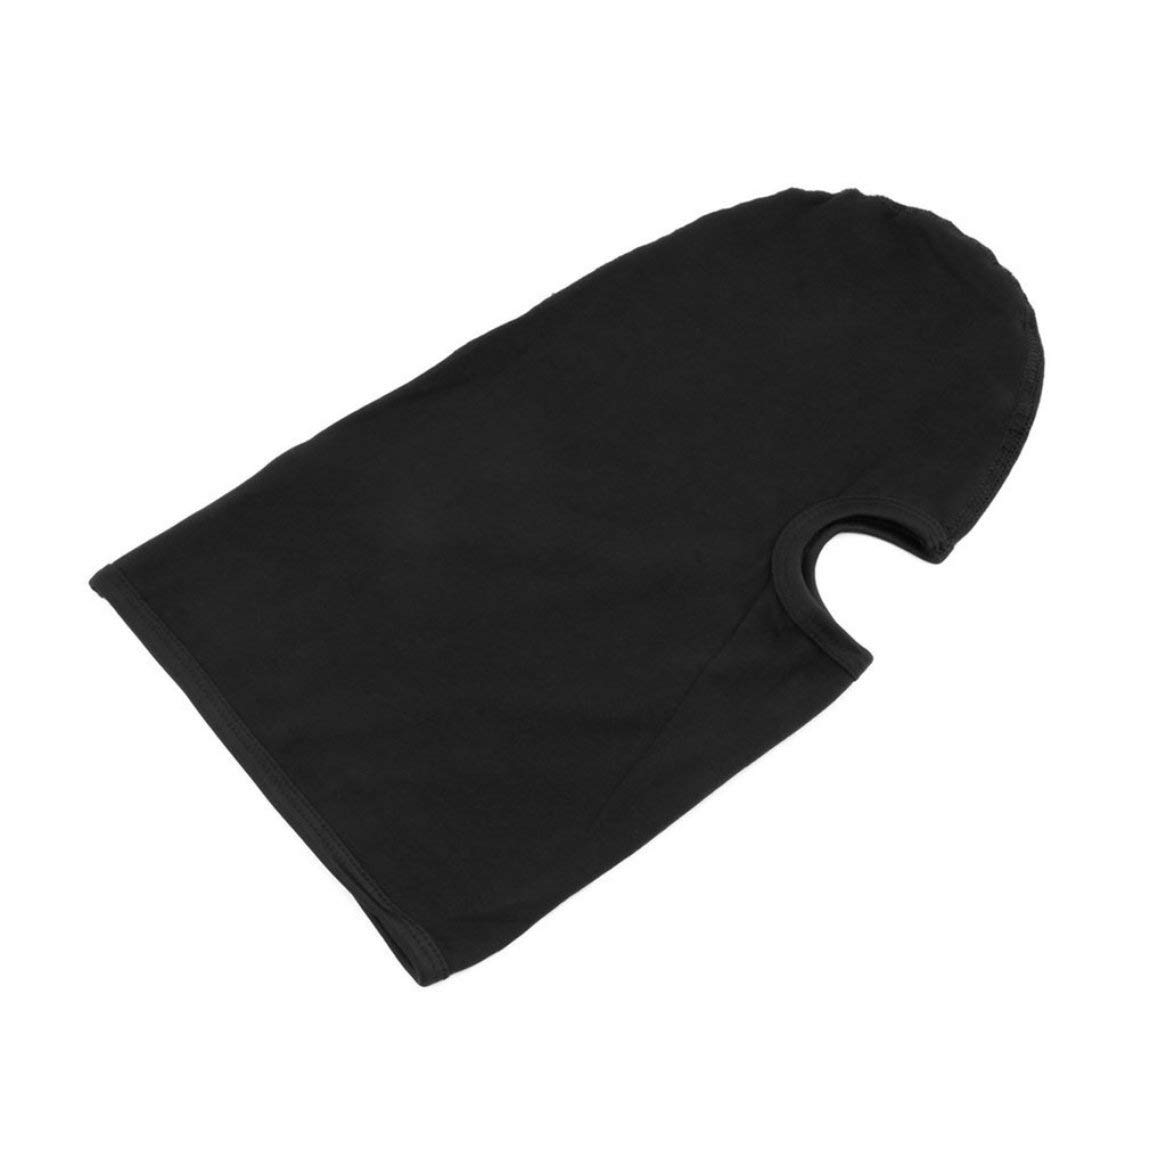 Unisex Adult Winter Neck Cotton Warmer Face Mask Caps for Outdoor Sports Motorcycle Ski Bike Bicycle Balaclava SeniorMar